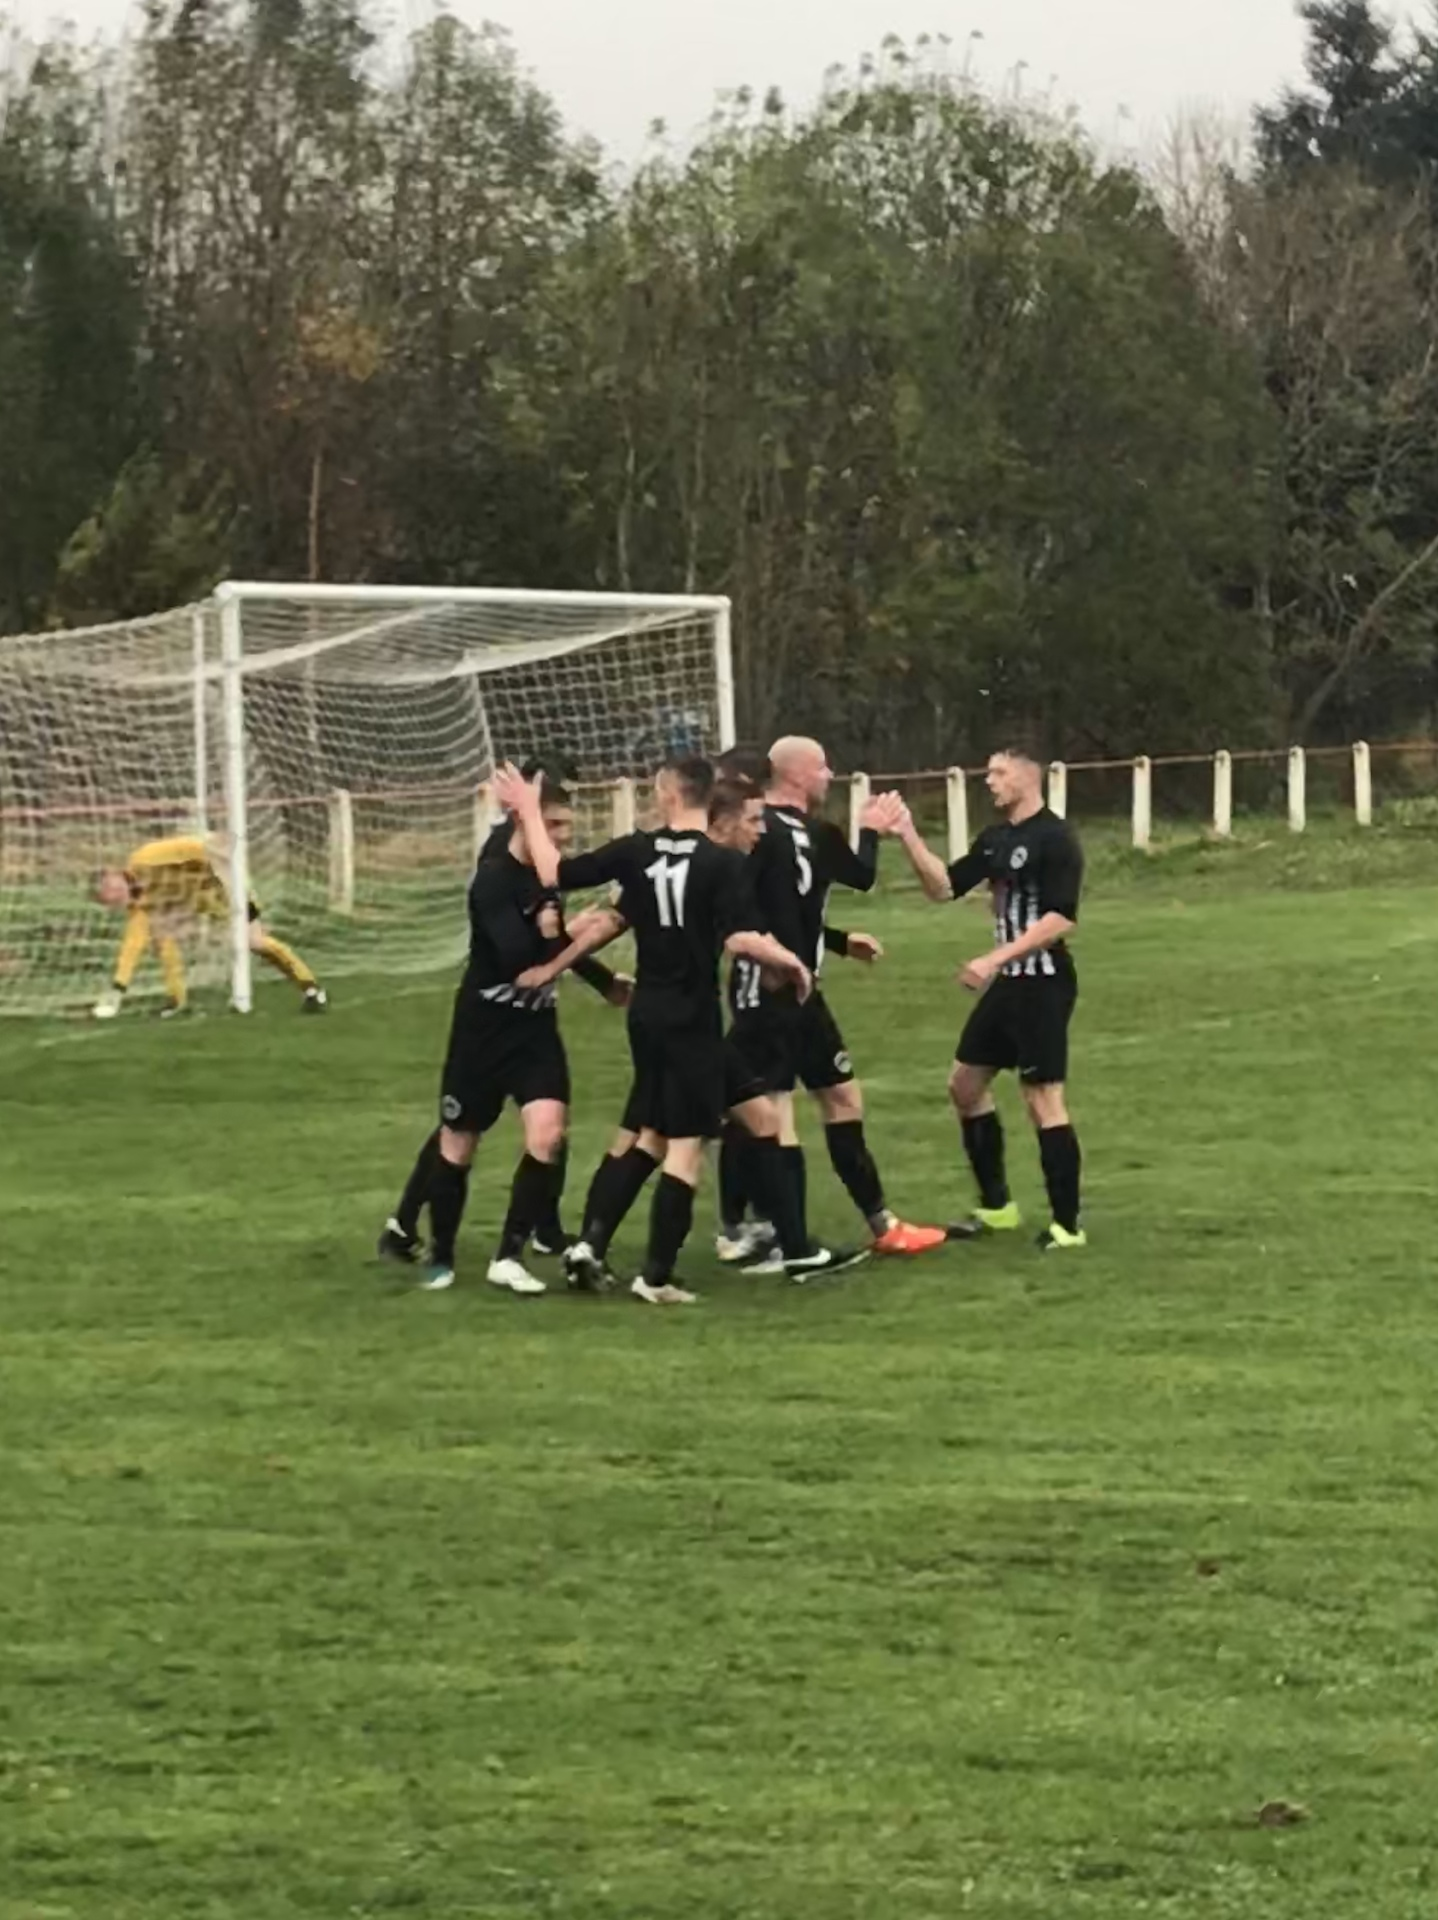 Cumnock Too Good for Craigmark and Progress into 3rd Round